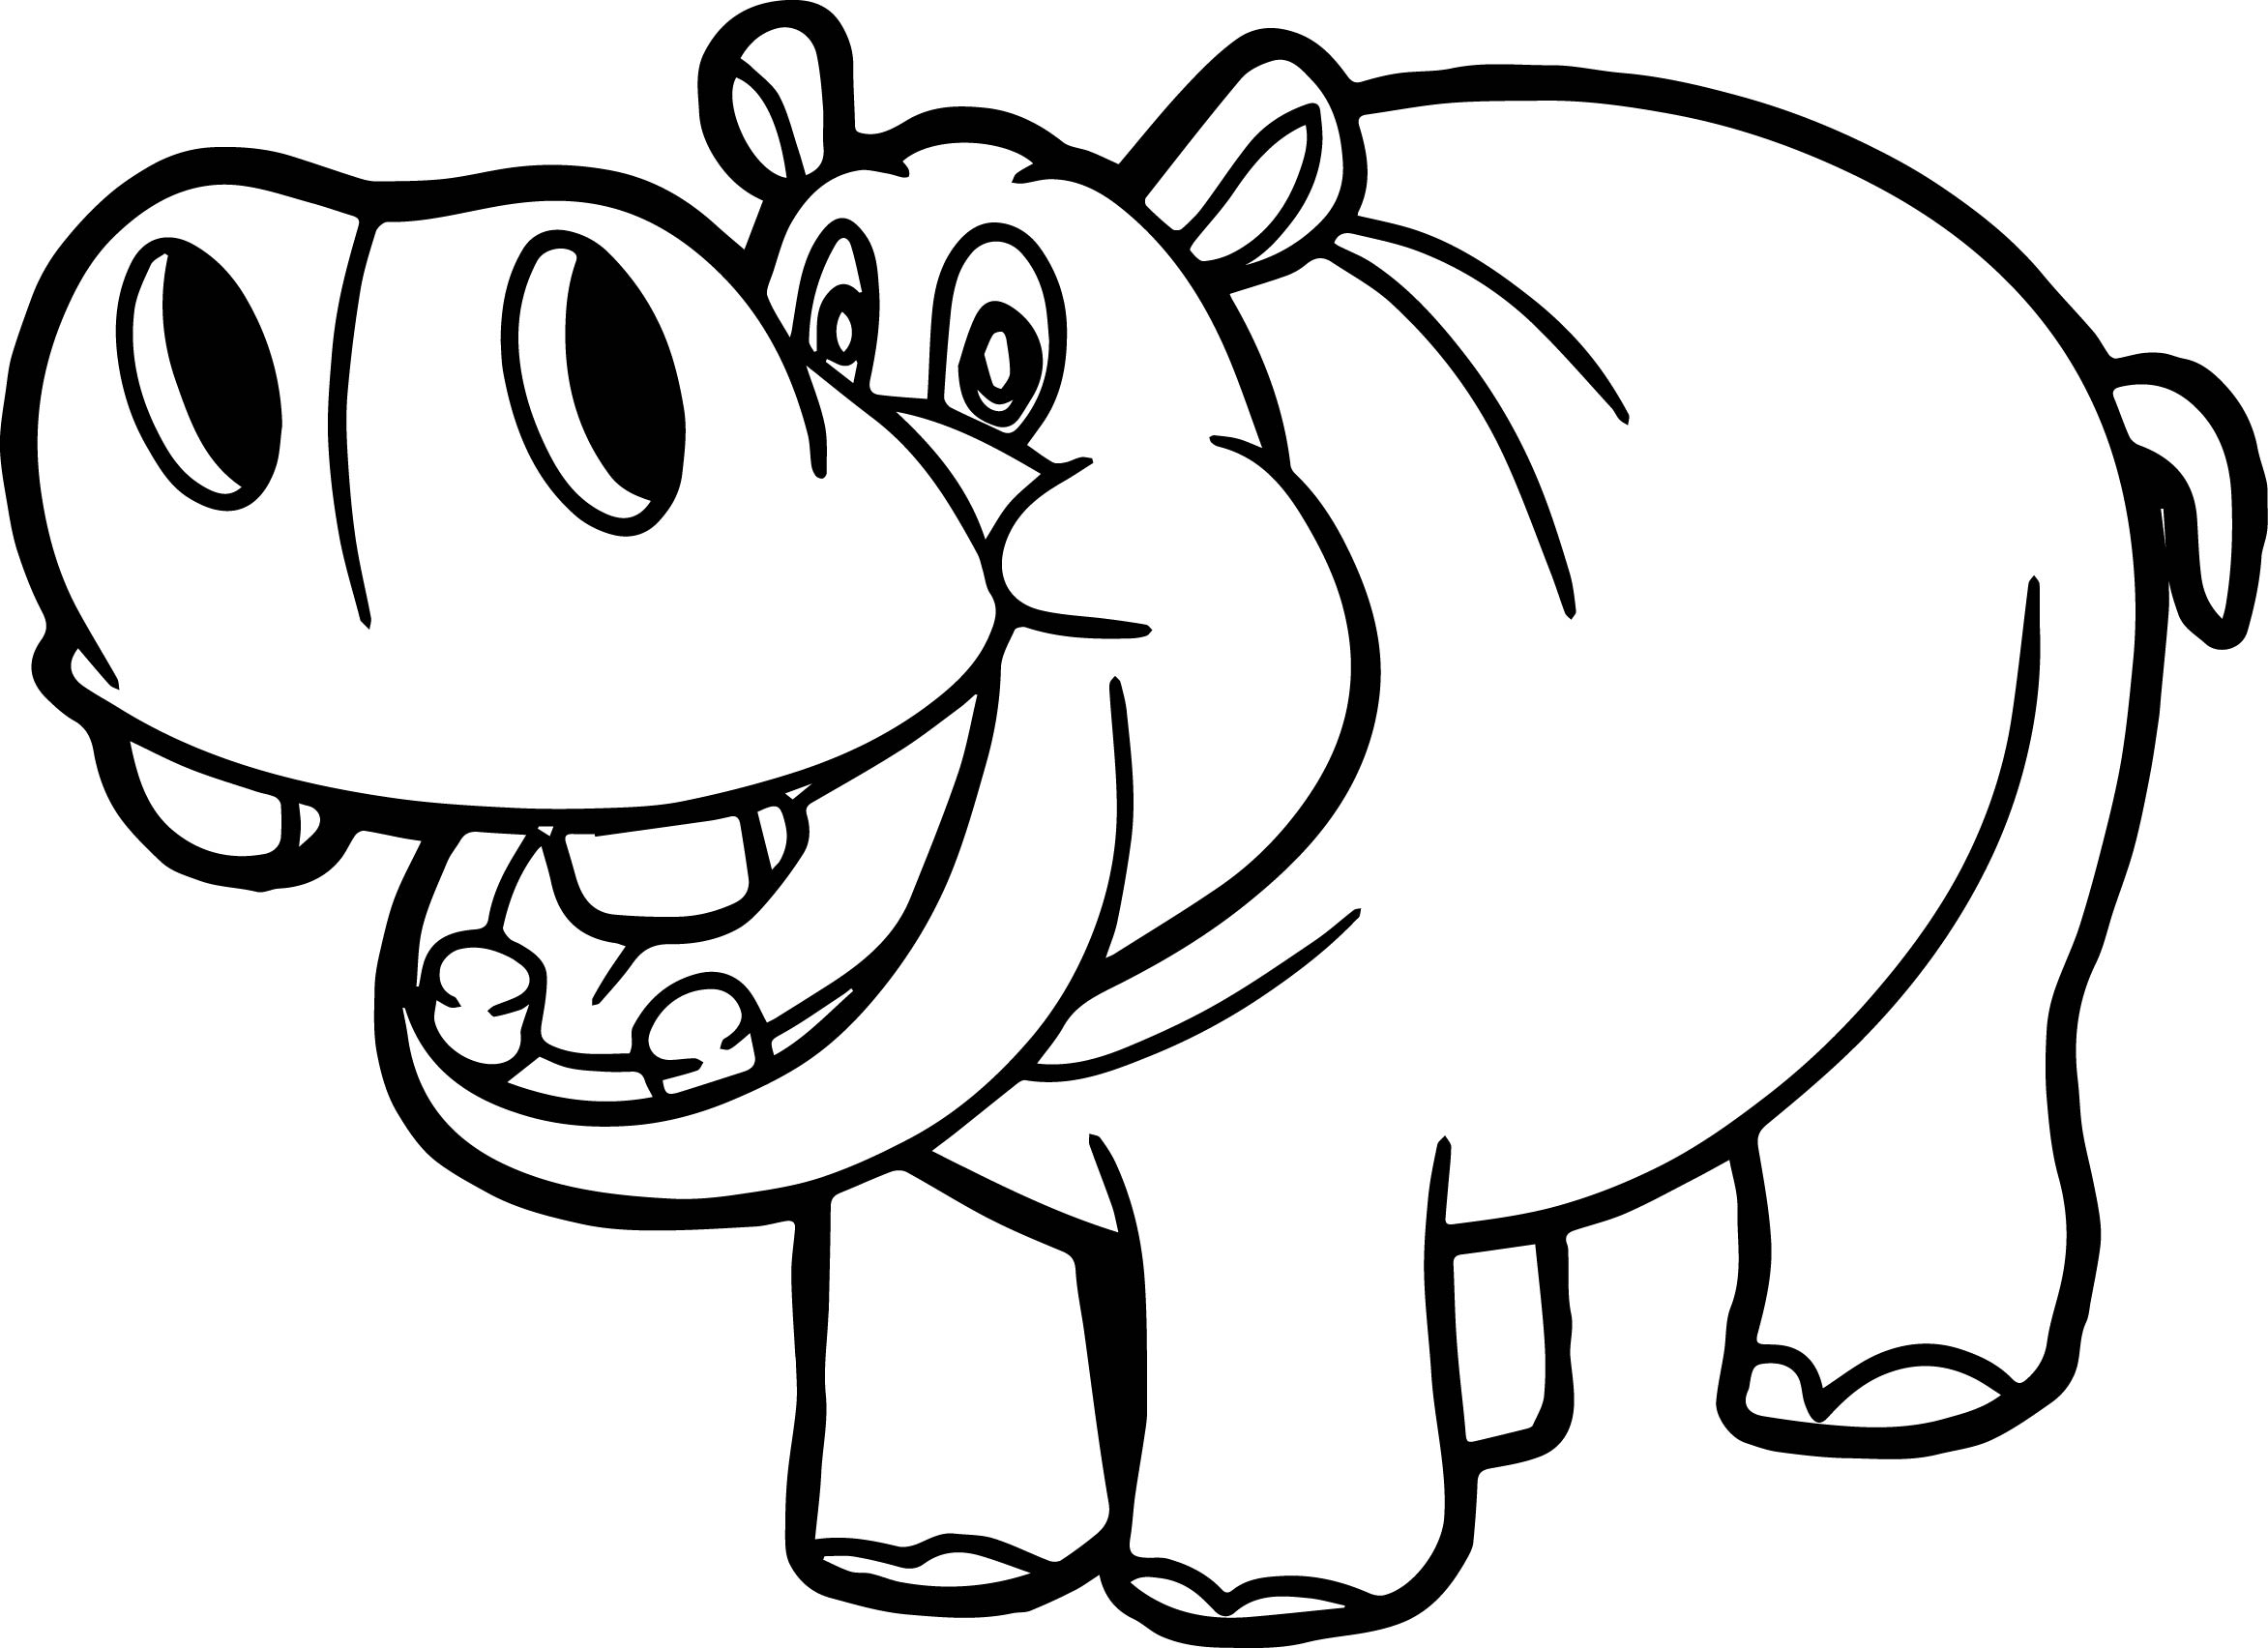 coloring page hippo hippopotamus animals coloring pages kids coloring pages page coloring hippo